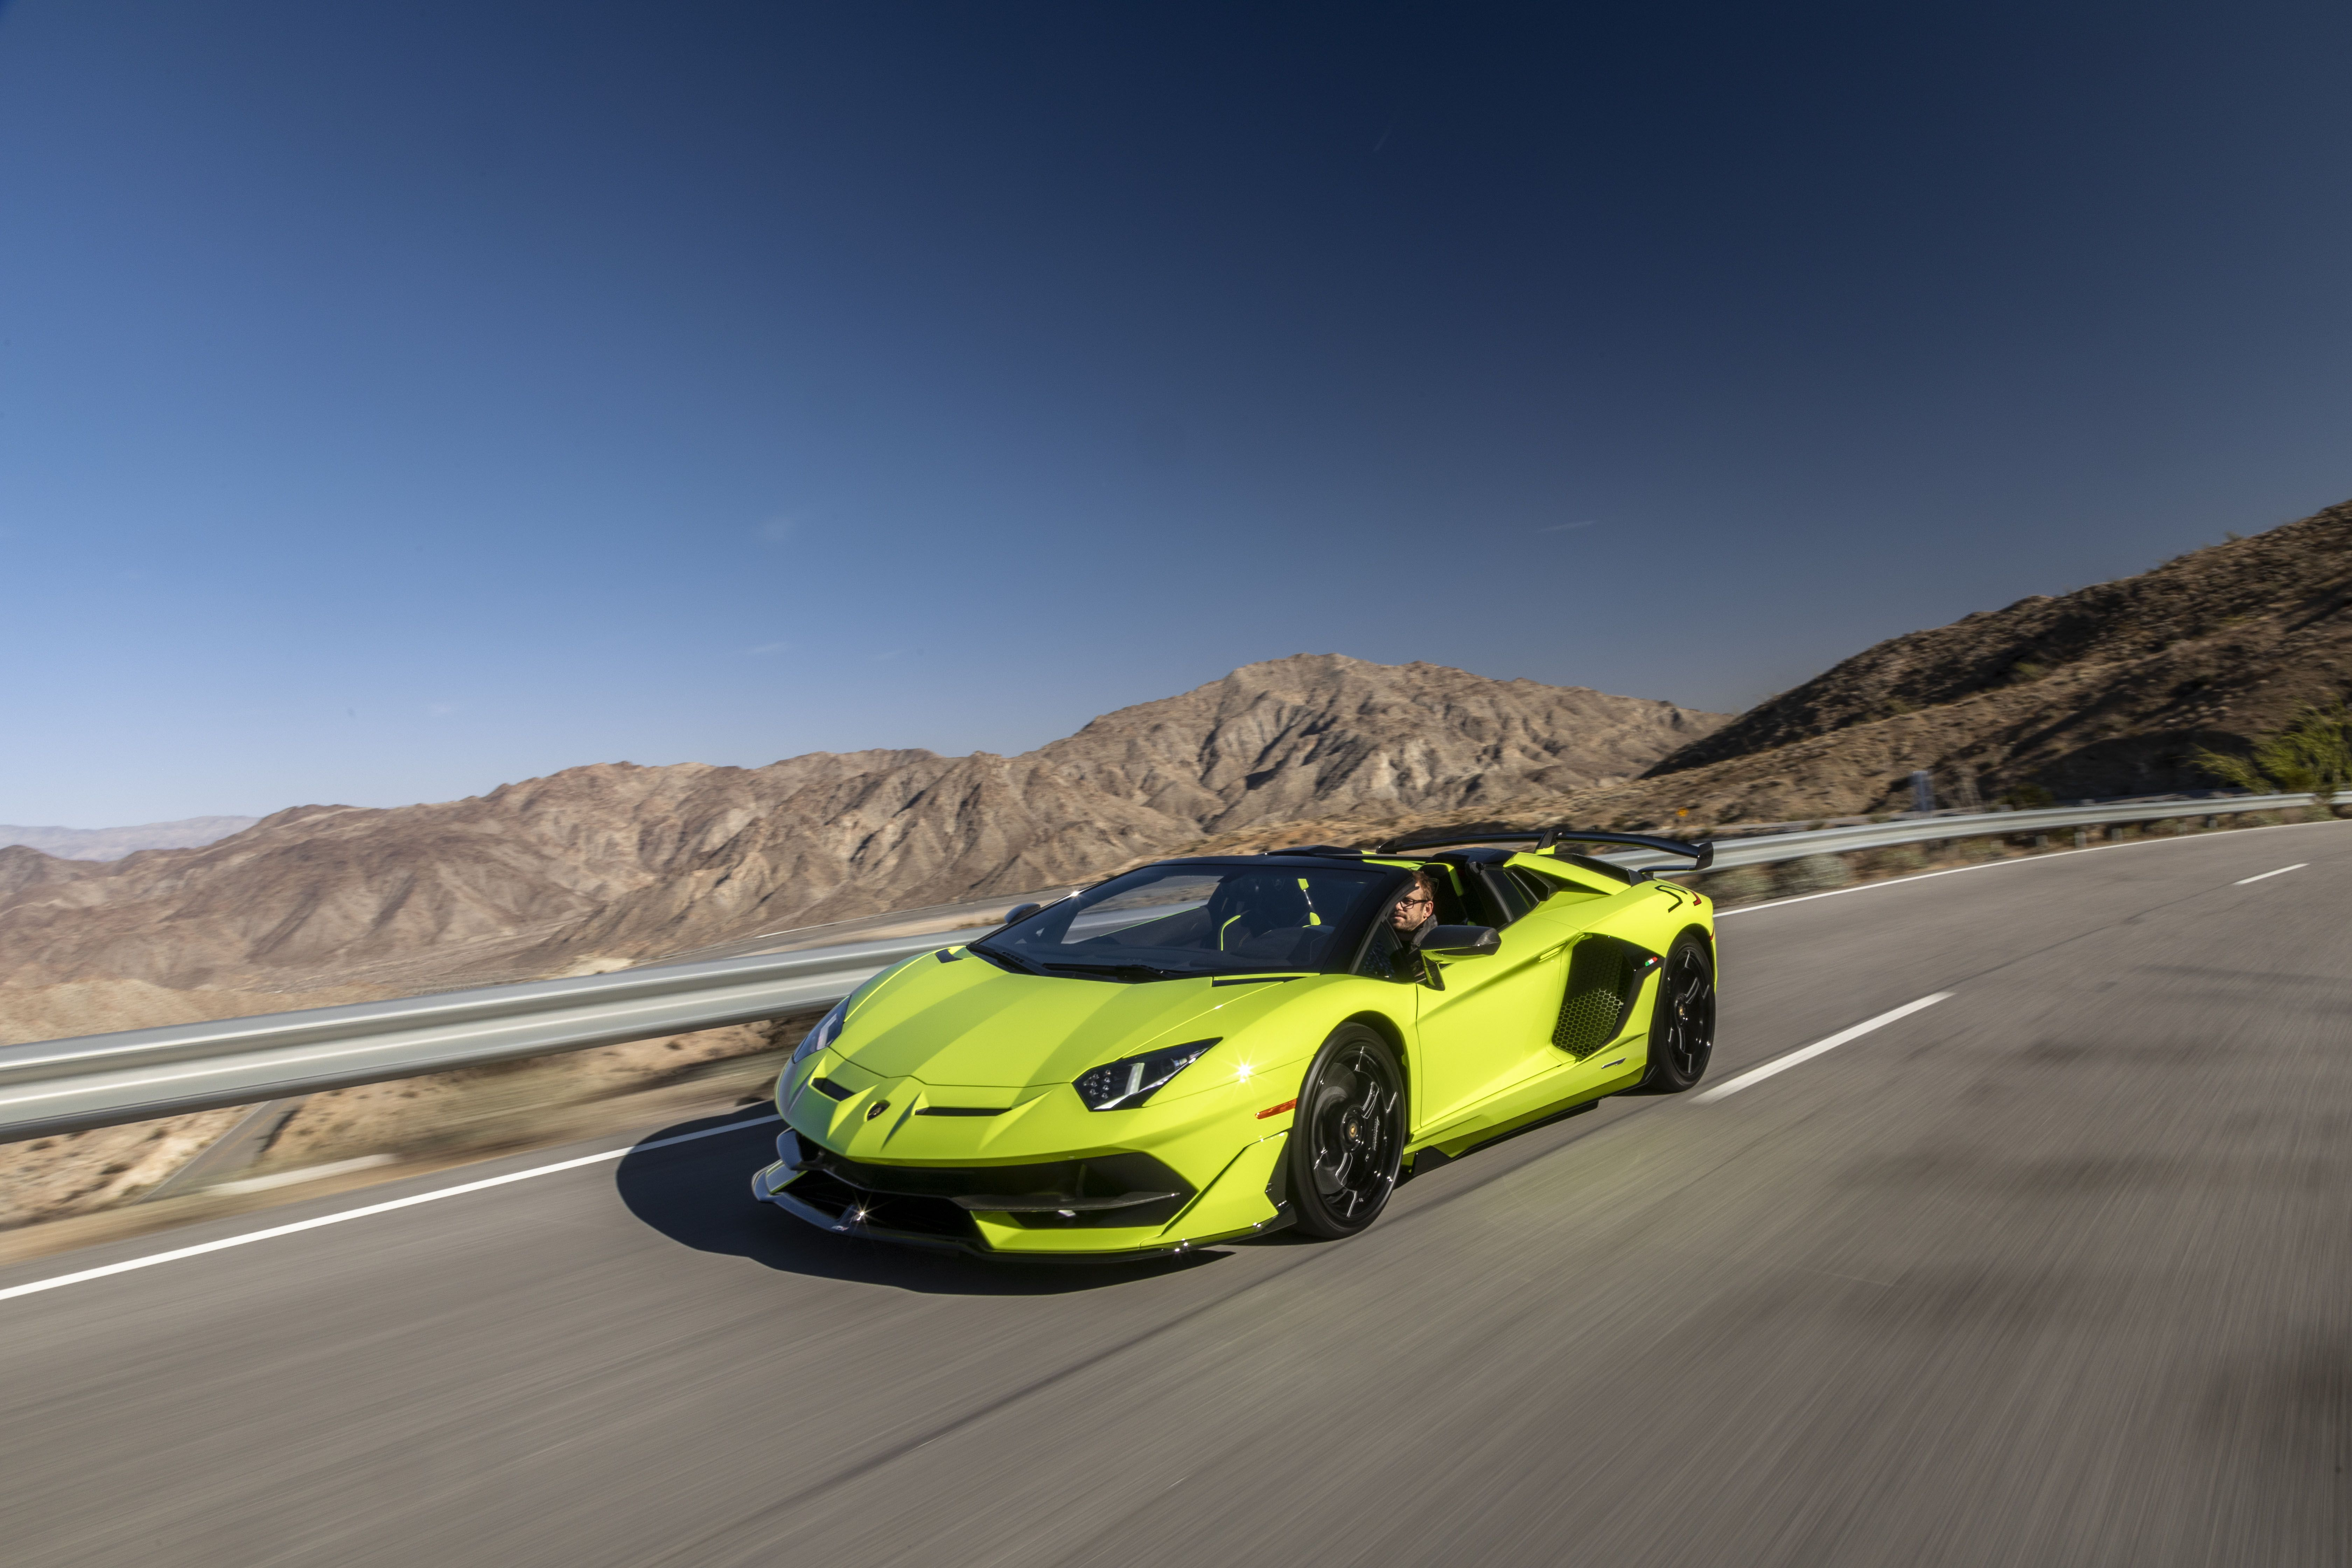 Lamborghini Aventador Svj Roadster Will Make Your Brain Scream